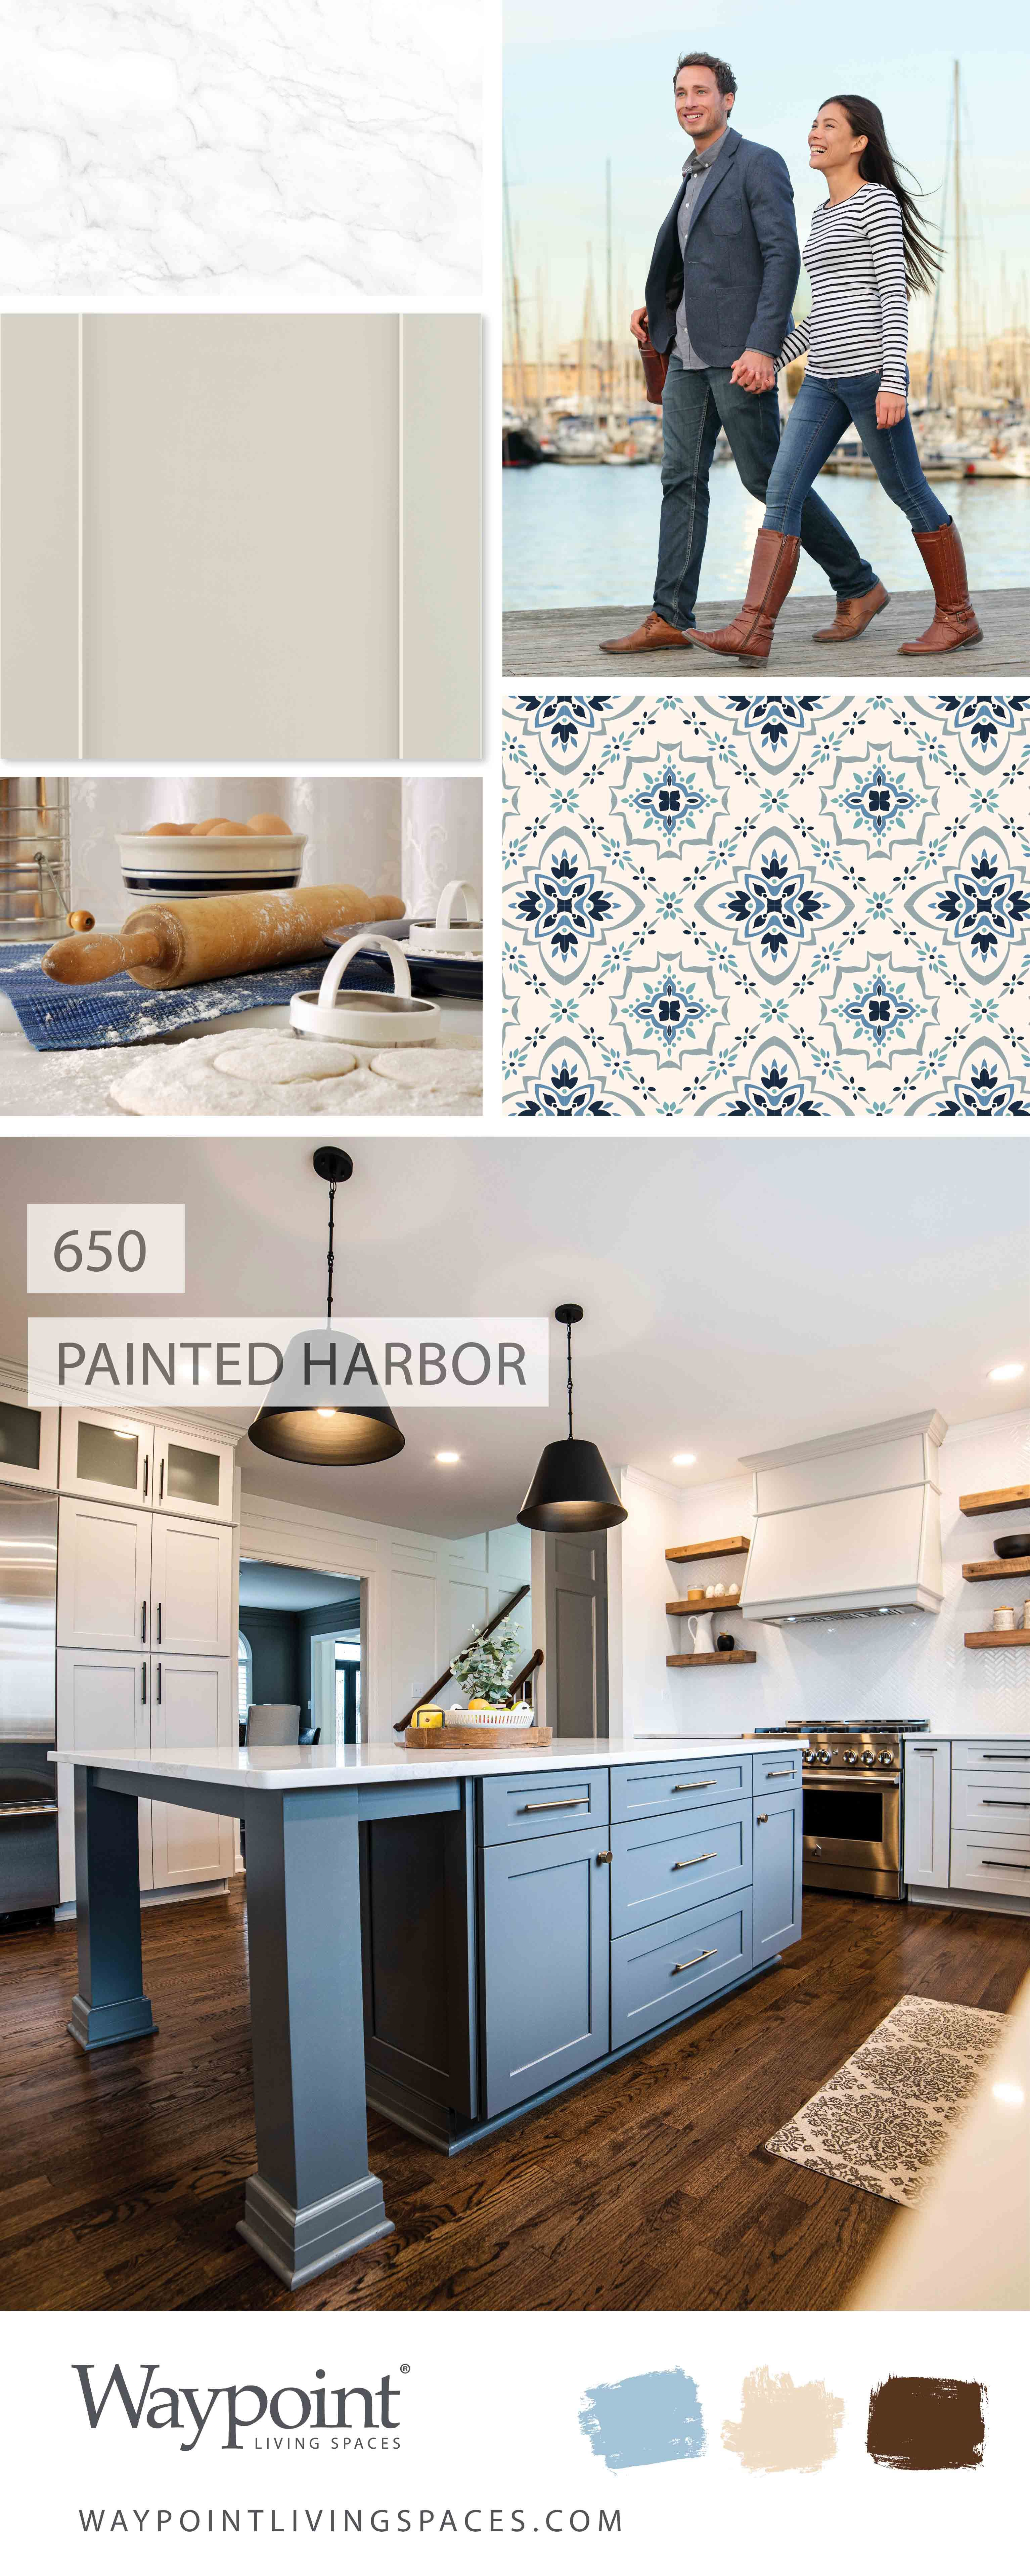 Monday S Mood Board Was Inspired By Mark Wishnow S Wish Kitchens And Baths In Hagerstown Md Incredible Design Using A In 2020 Cabinet Cabinet Doors Kitchen Remodel